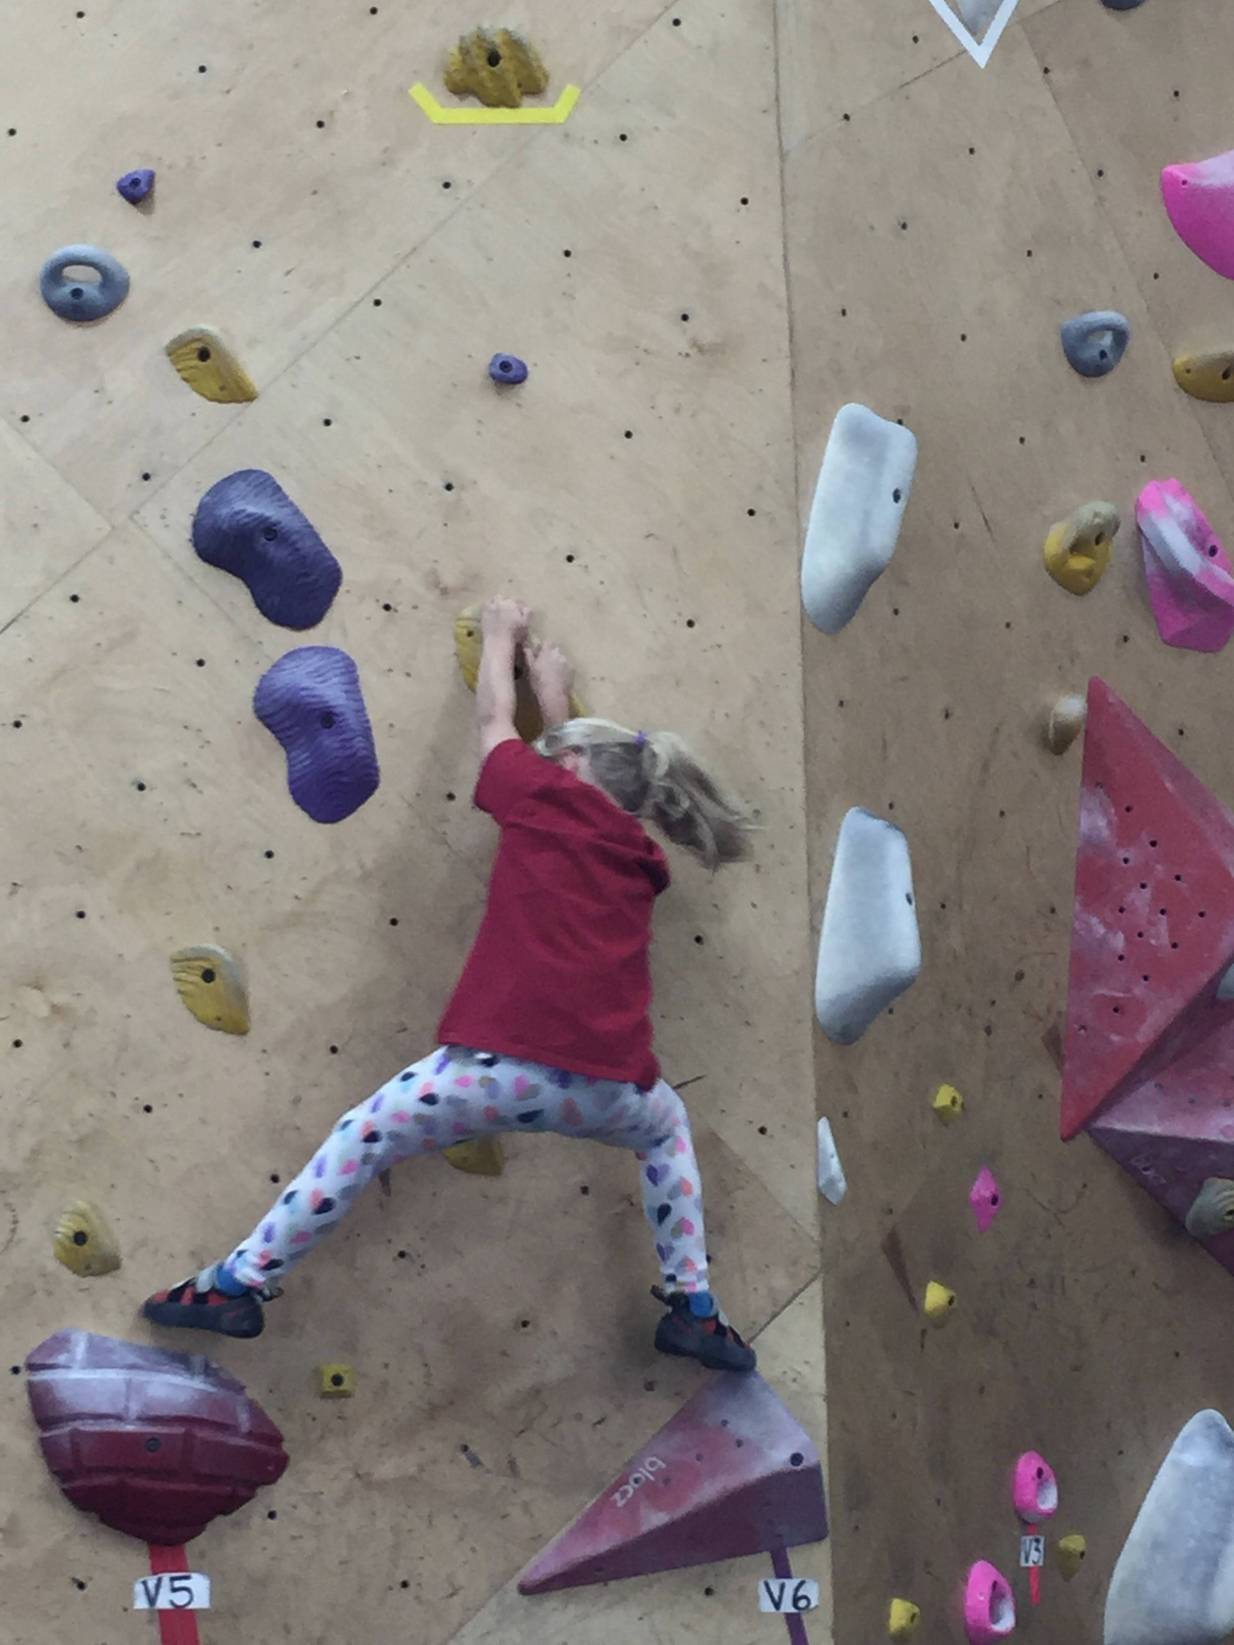 Wylie reaching for the next hold on the wall at Brooklyn Boulders in Somerville.